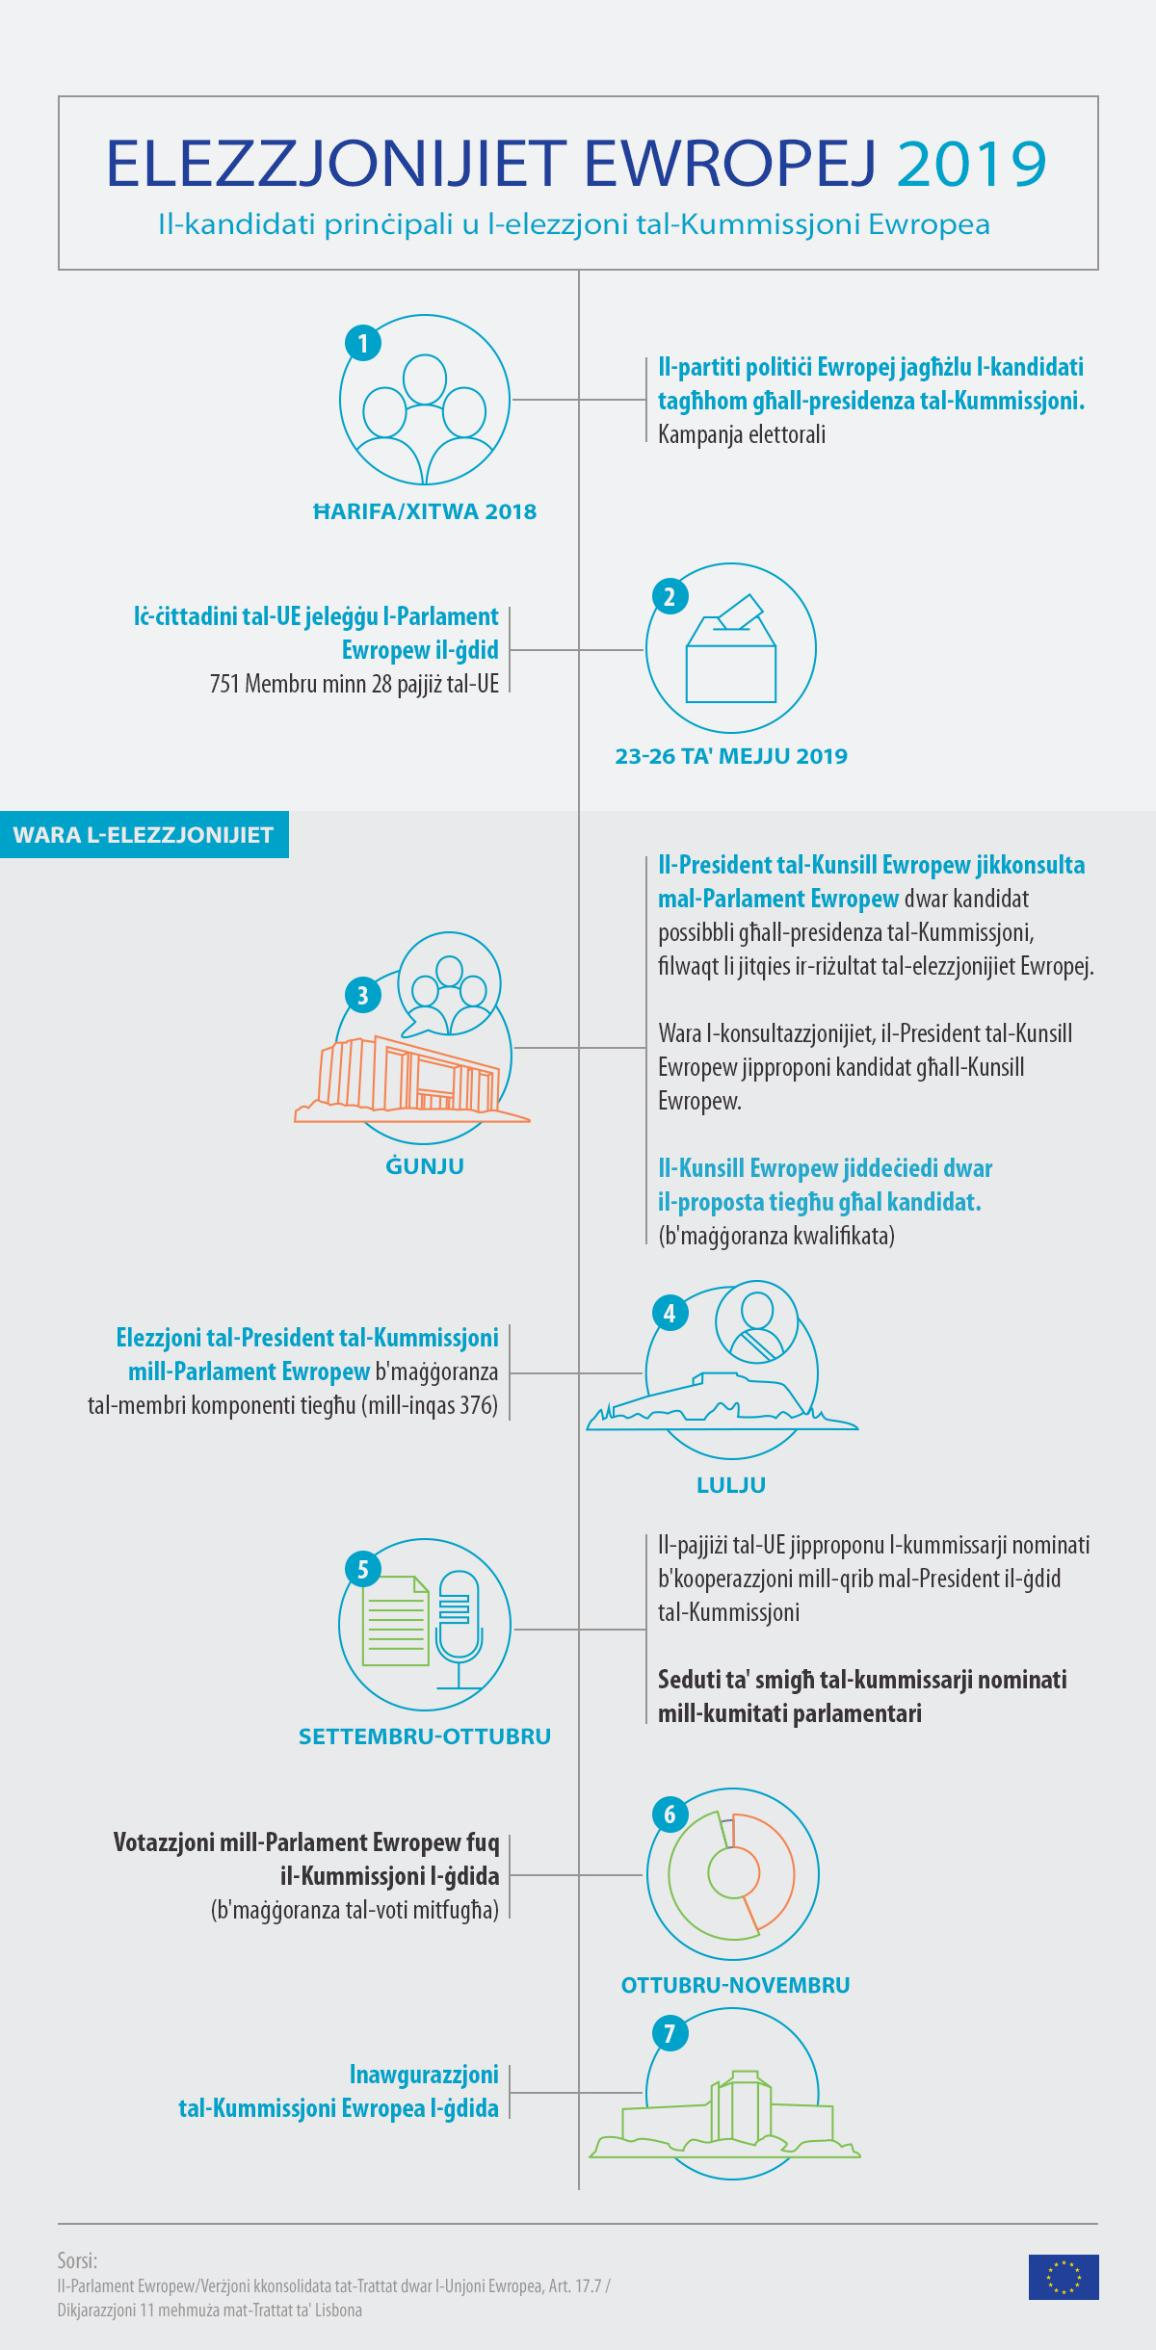 Infographic on European elections 2019 - Timeline